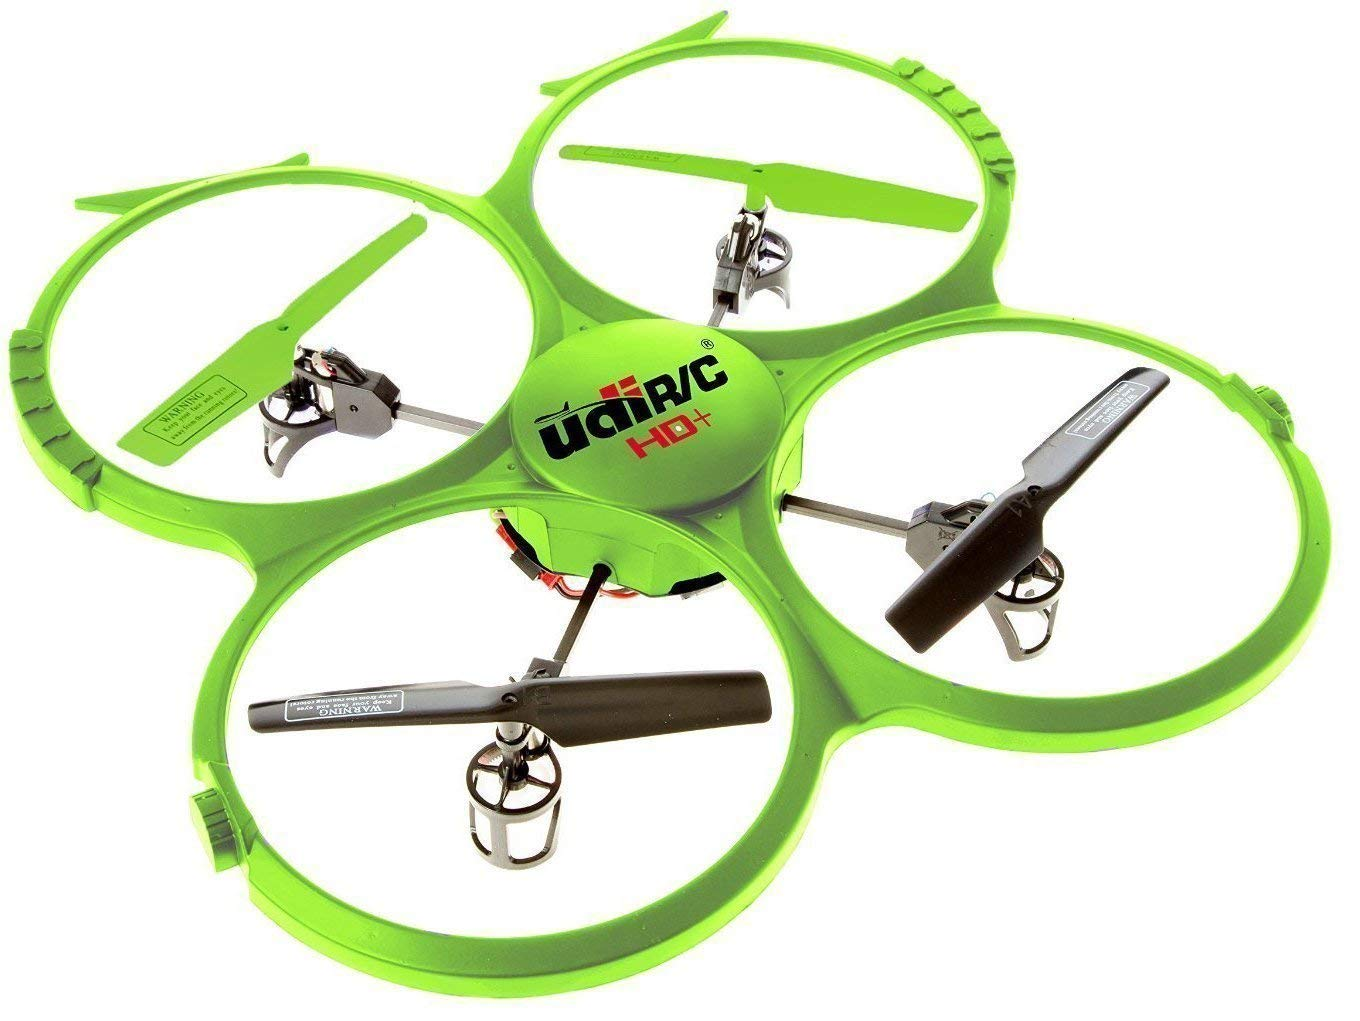 Force1 U818A HD Camera RC Quadcopter